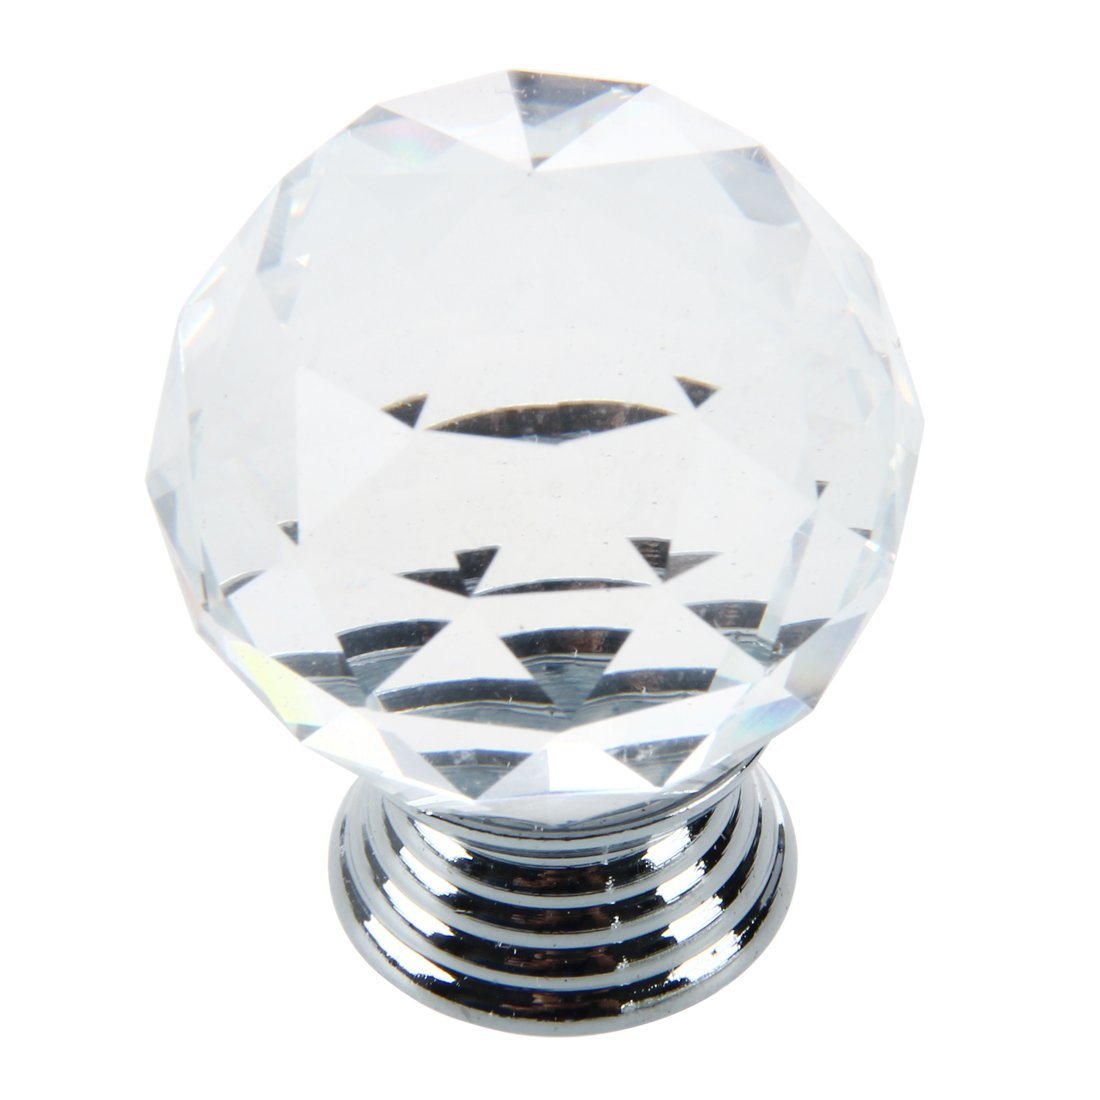 SODIAL(R) Clear Round Crystal Glass Cabinet Drawer Door Pull Knobs Handles 30mm